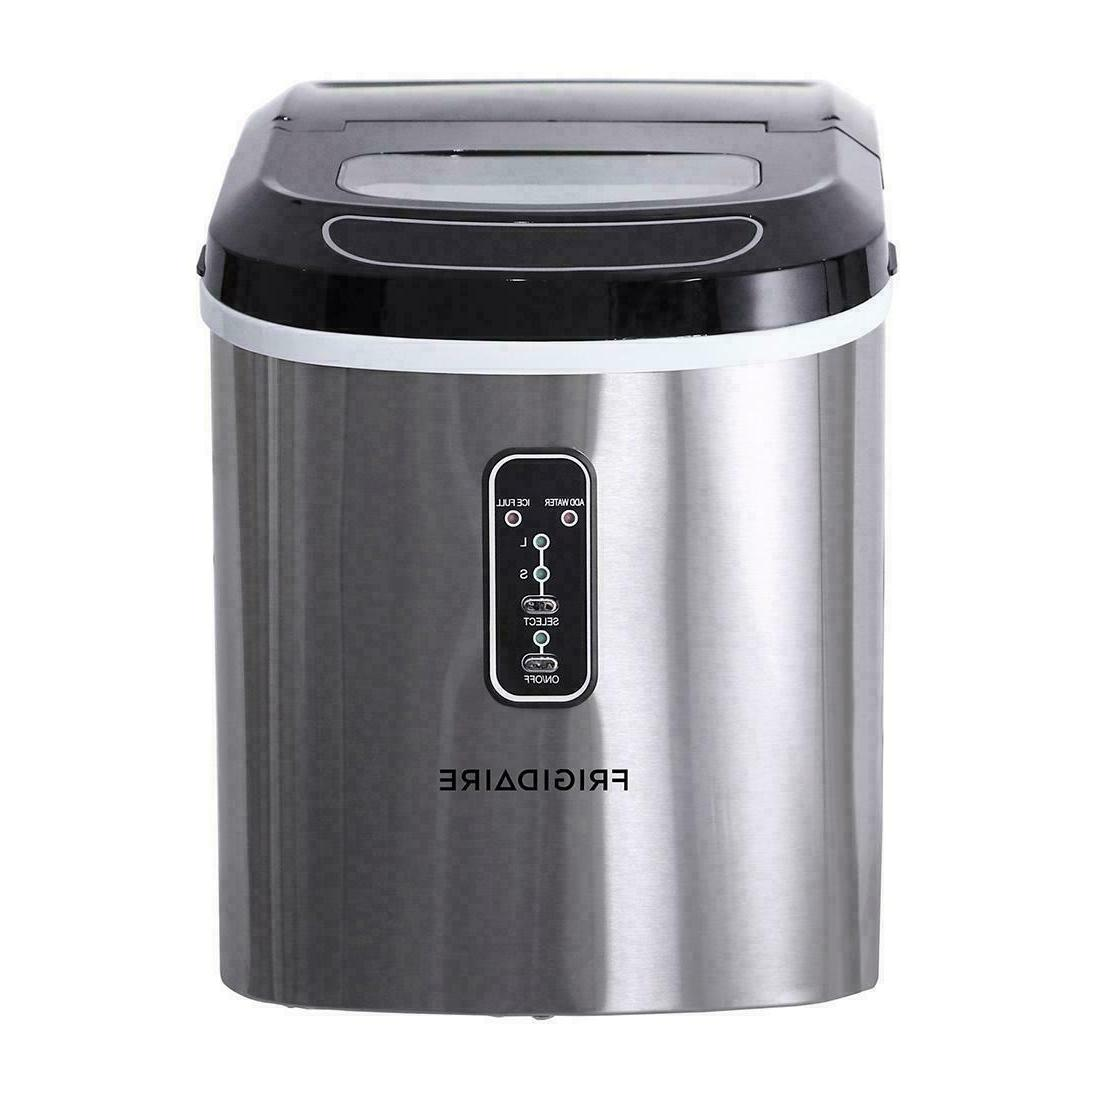 Frigidaire 26-lb. Maker Portable Stainless